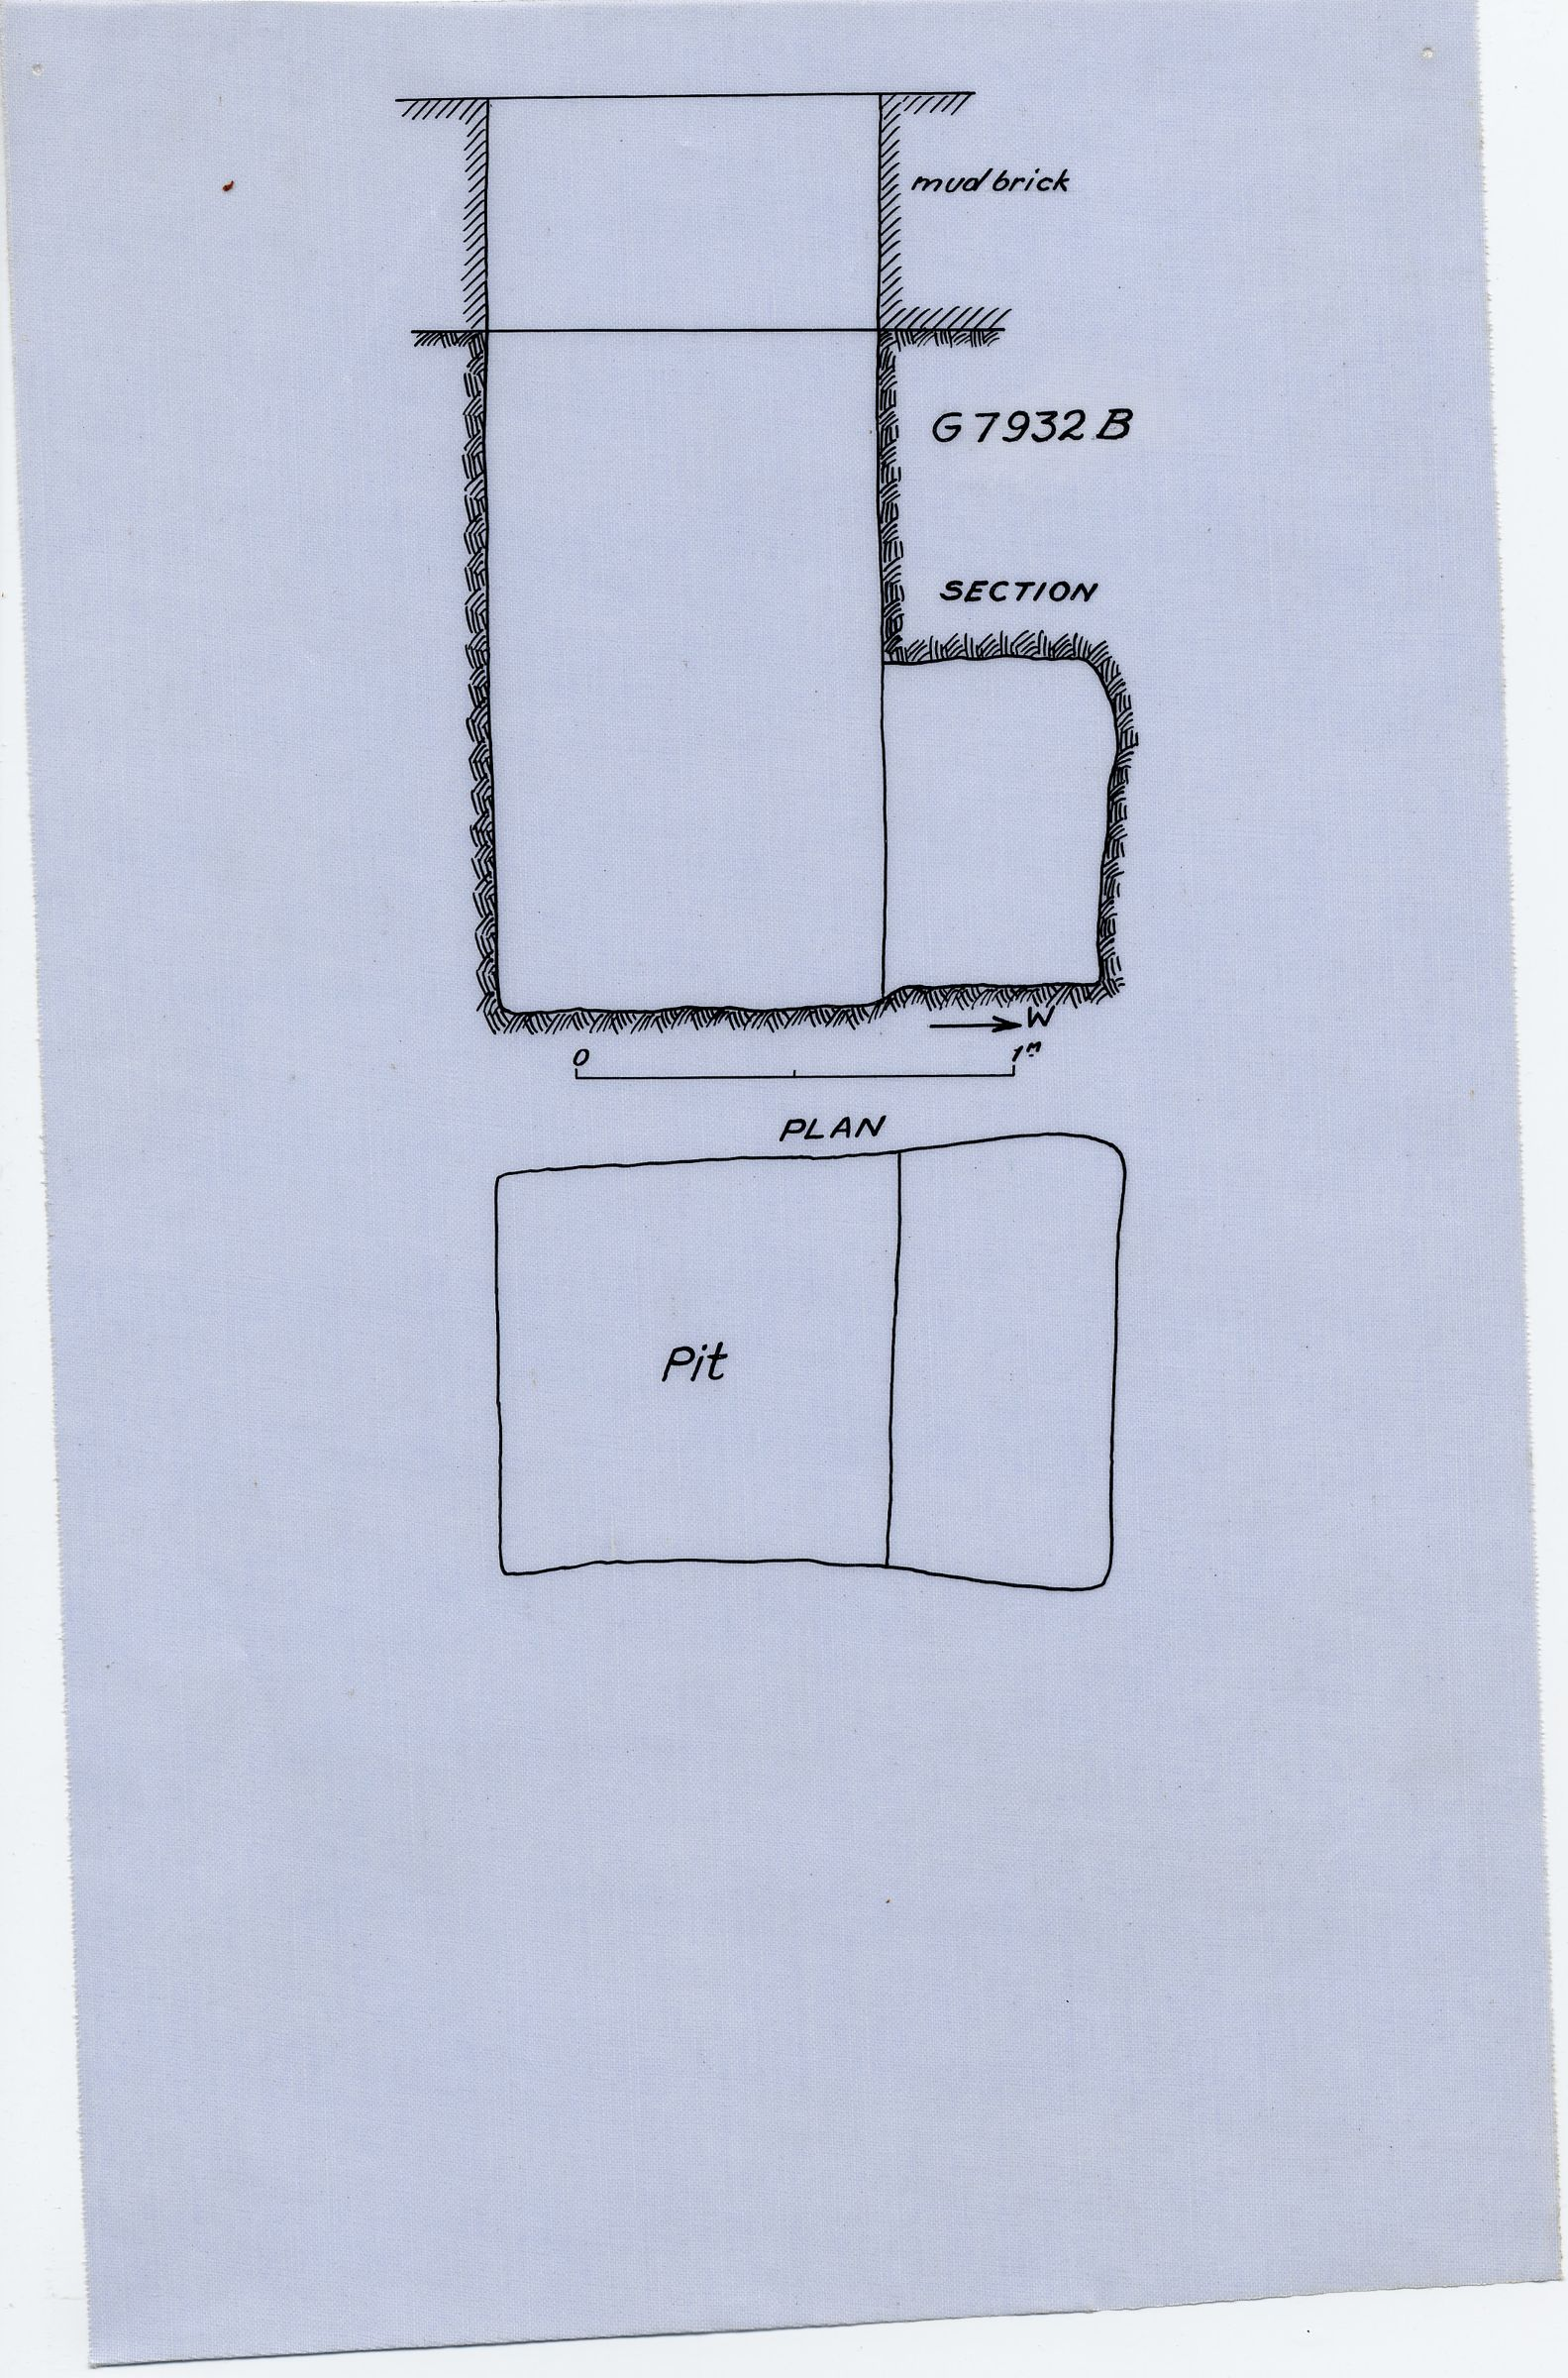 Maps and plans: G 7932, Shaft B